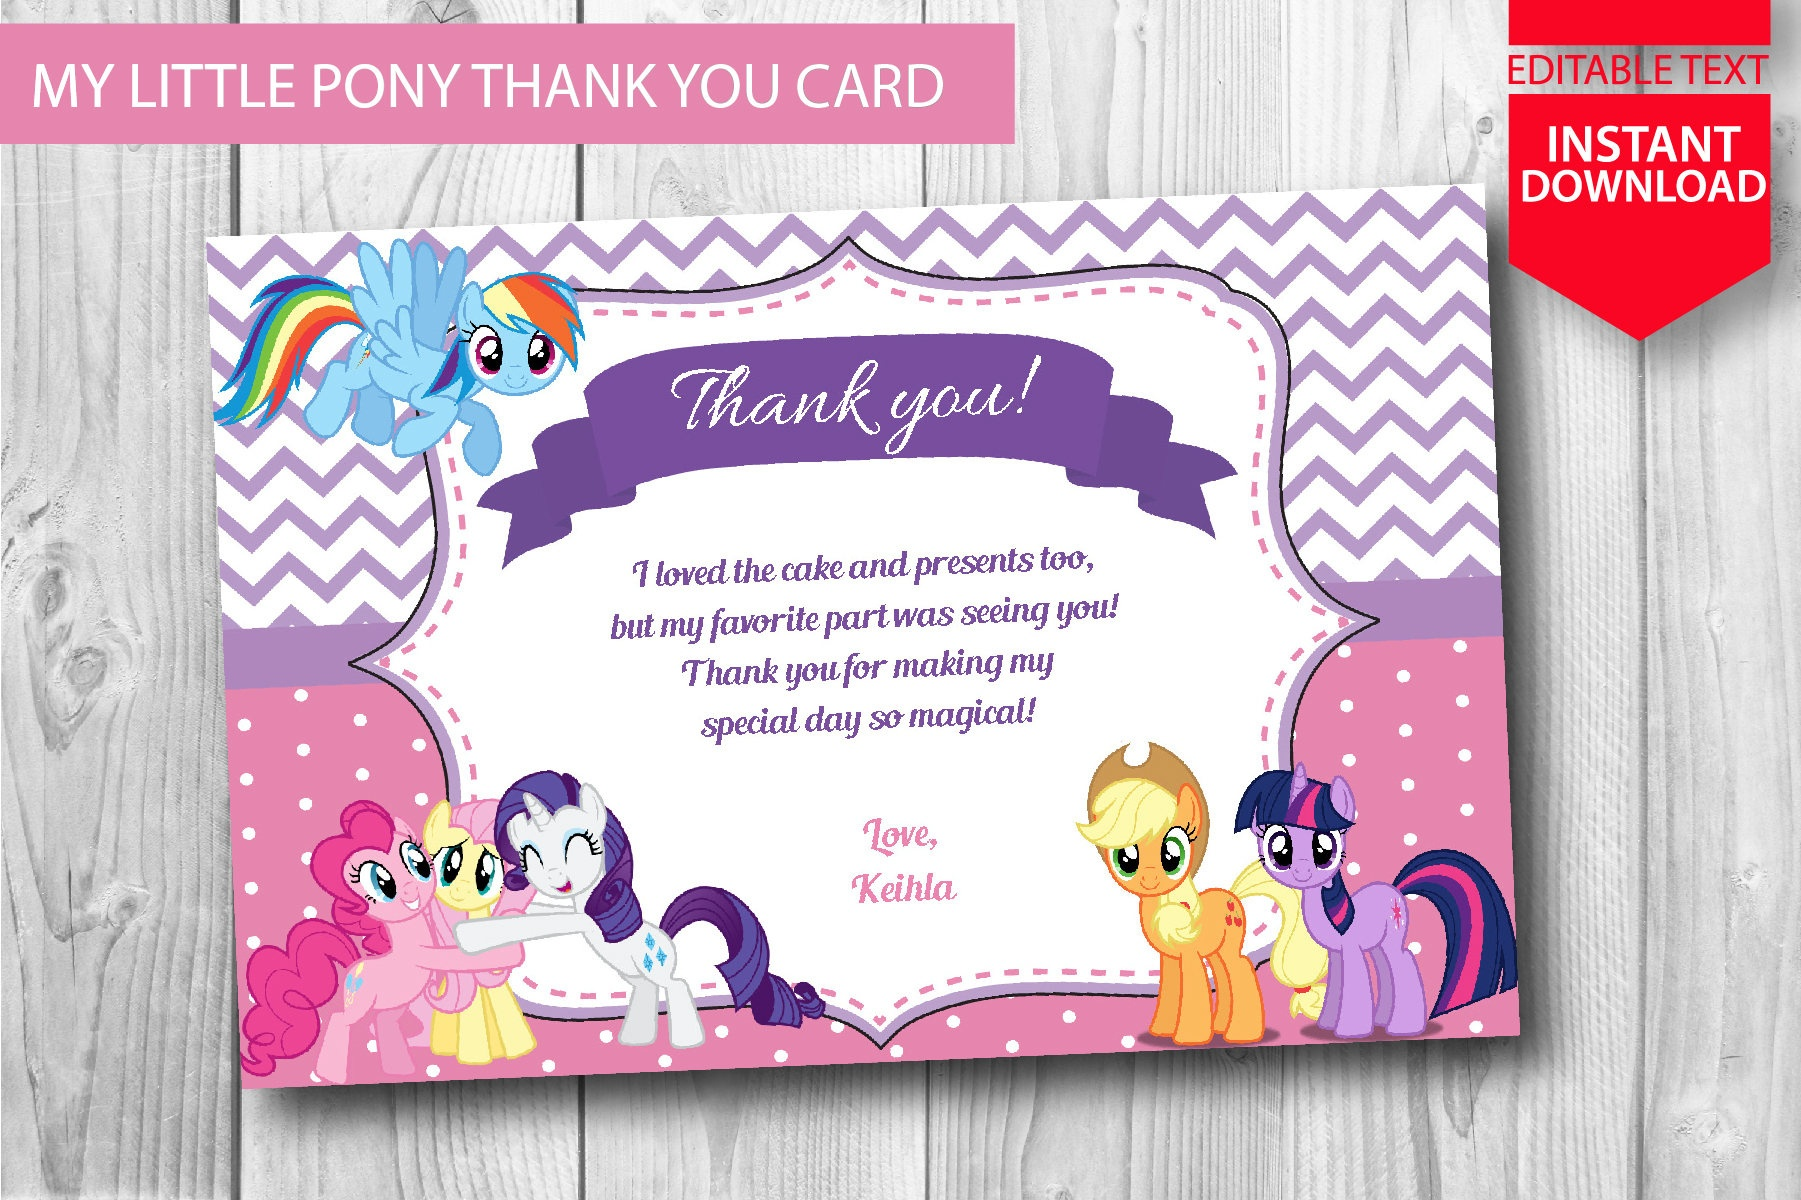 My Little Pony Thank You Card Instant Download Editable | Etsy - Free Printable My Little Pony Thank You Cards